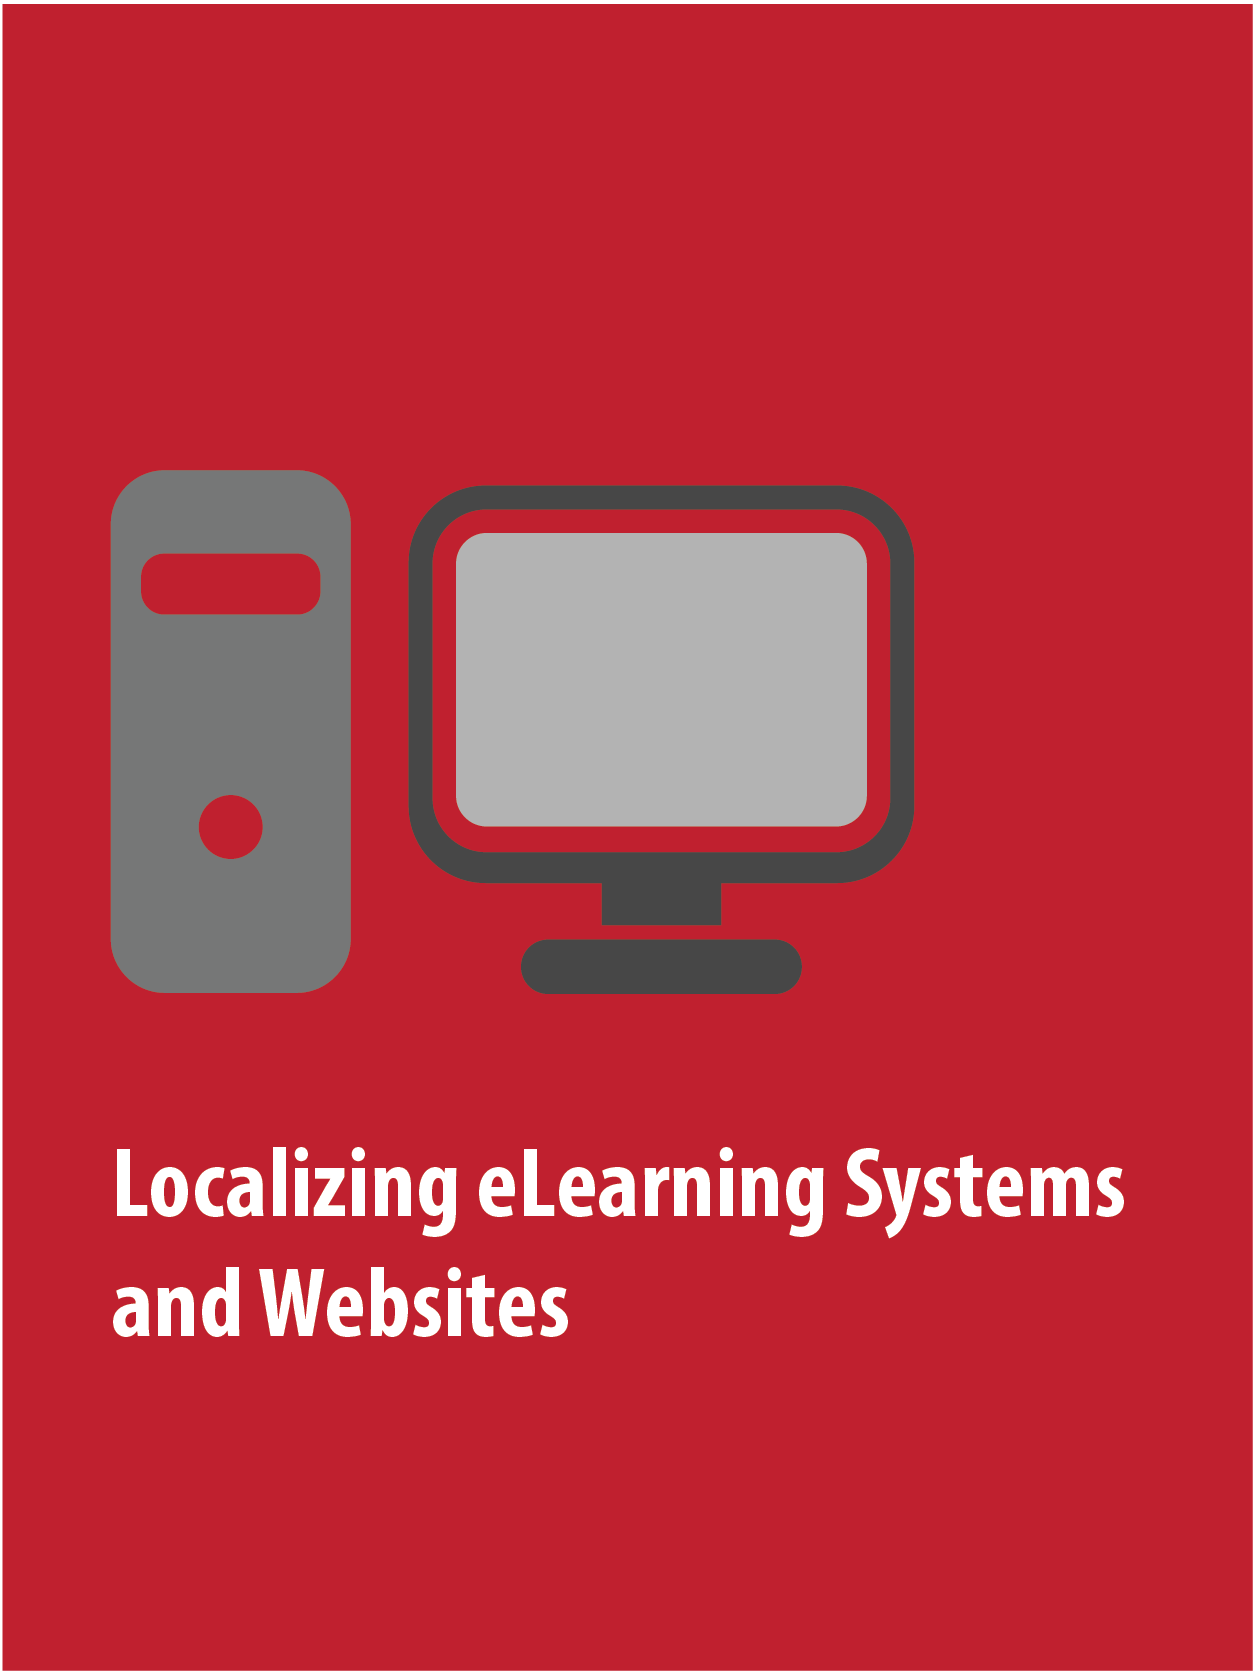 Localizing-eLearning-Systems-and-Website - Cover.png